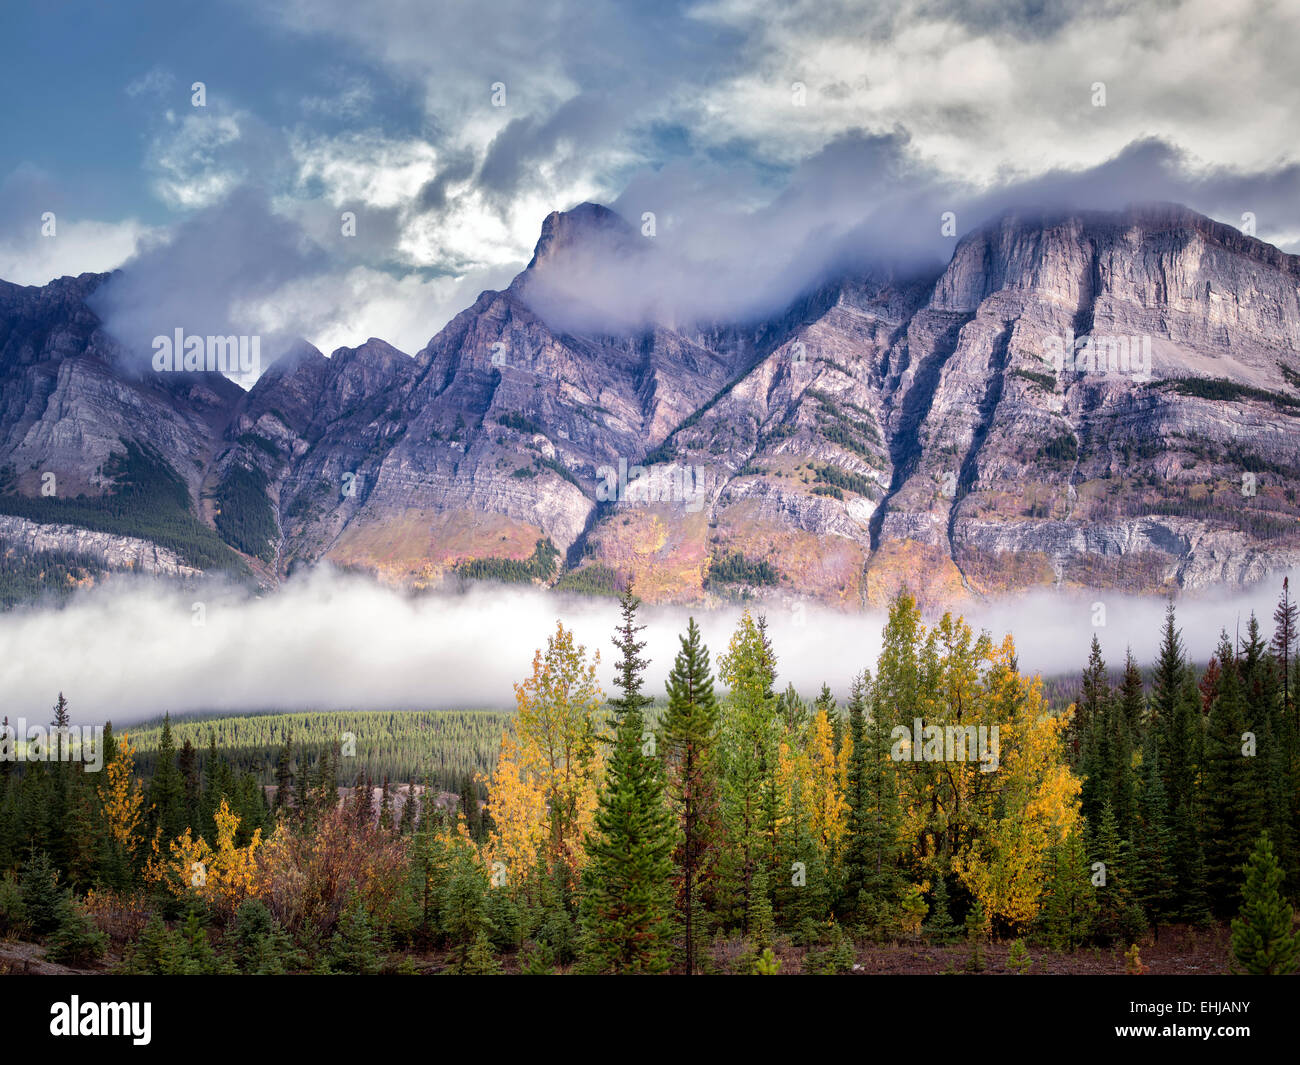 Fog and low clouds with autumn colors. Banff National Park. Alberta, Canada - Stock Image